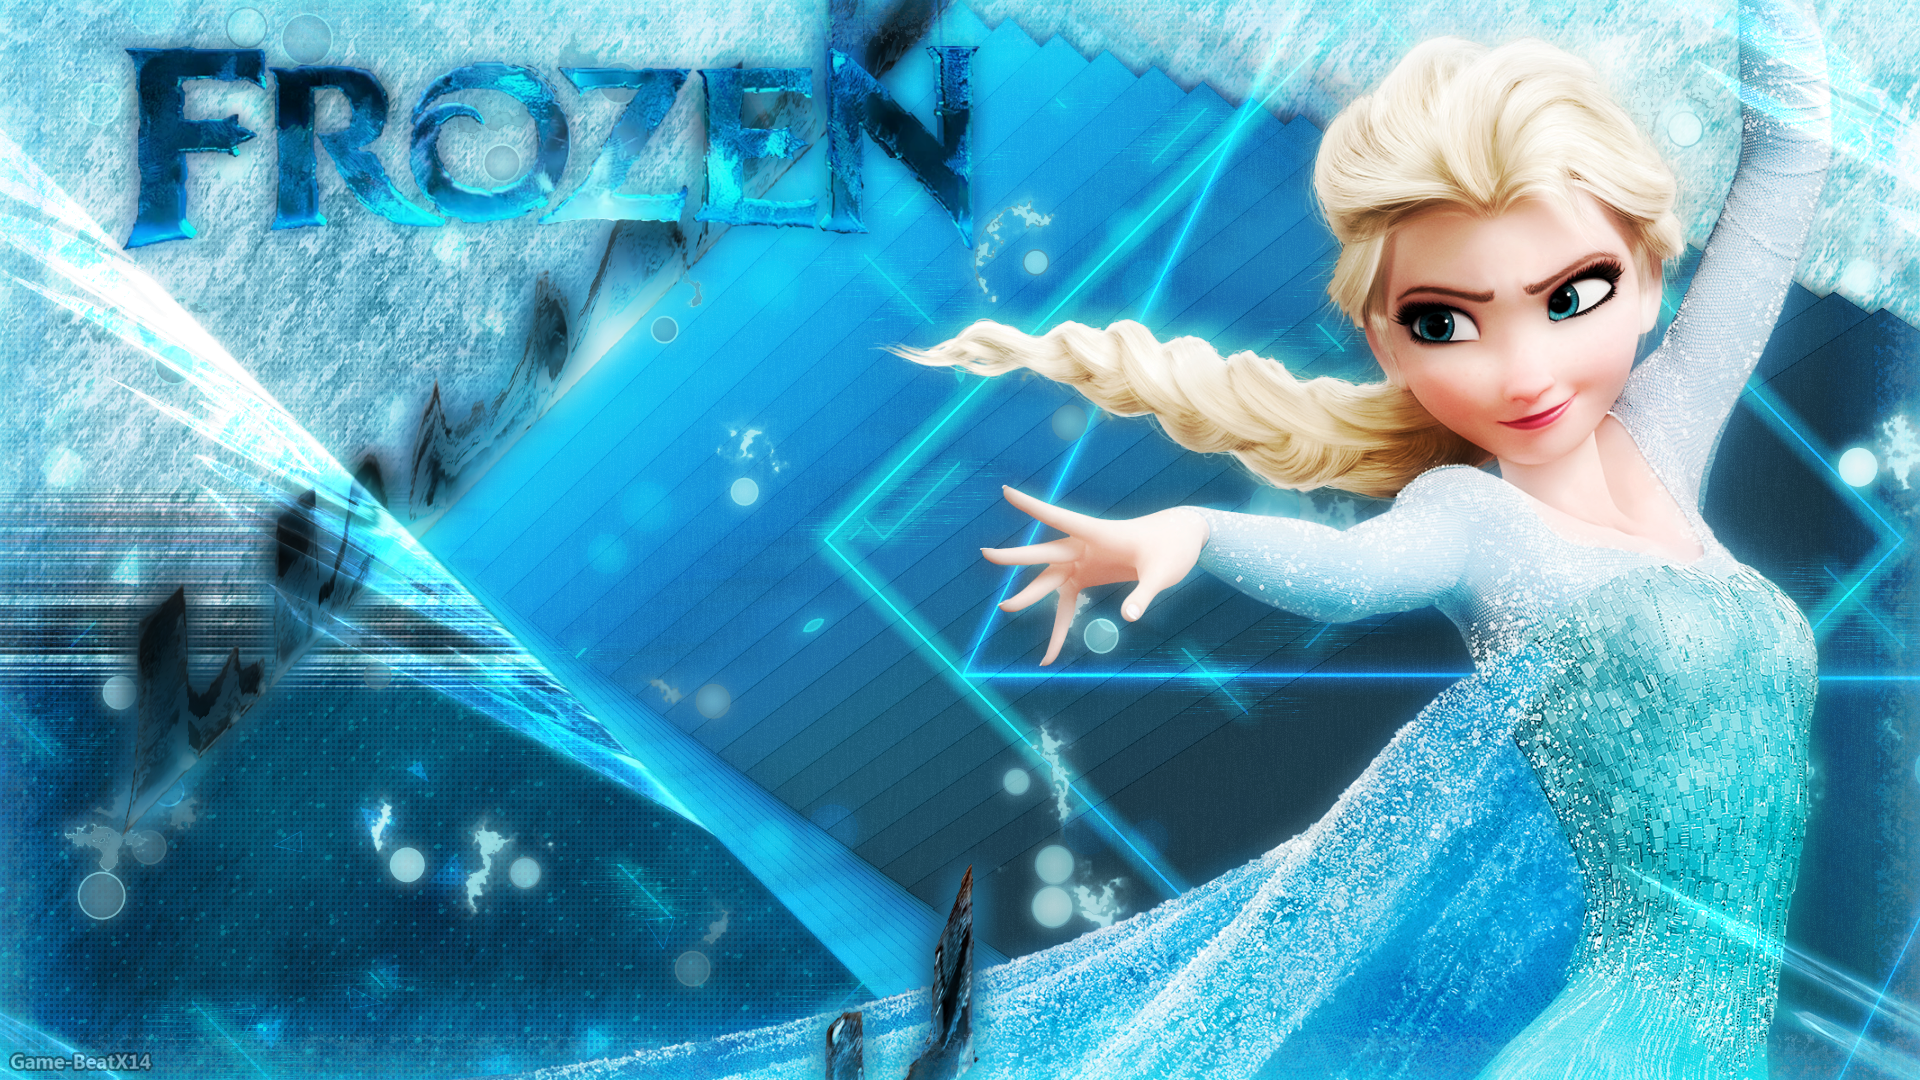 frozen wallpaper by game beatx14 fan art wallpaper movies tv inspired 1920x1080